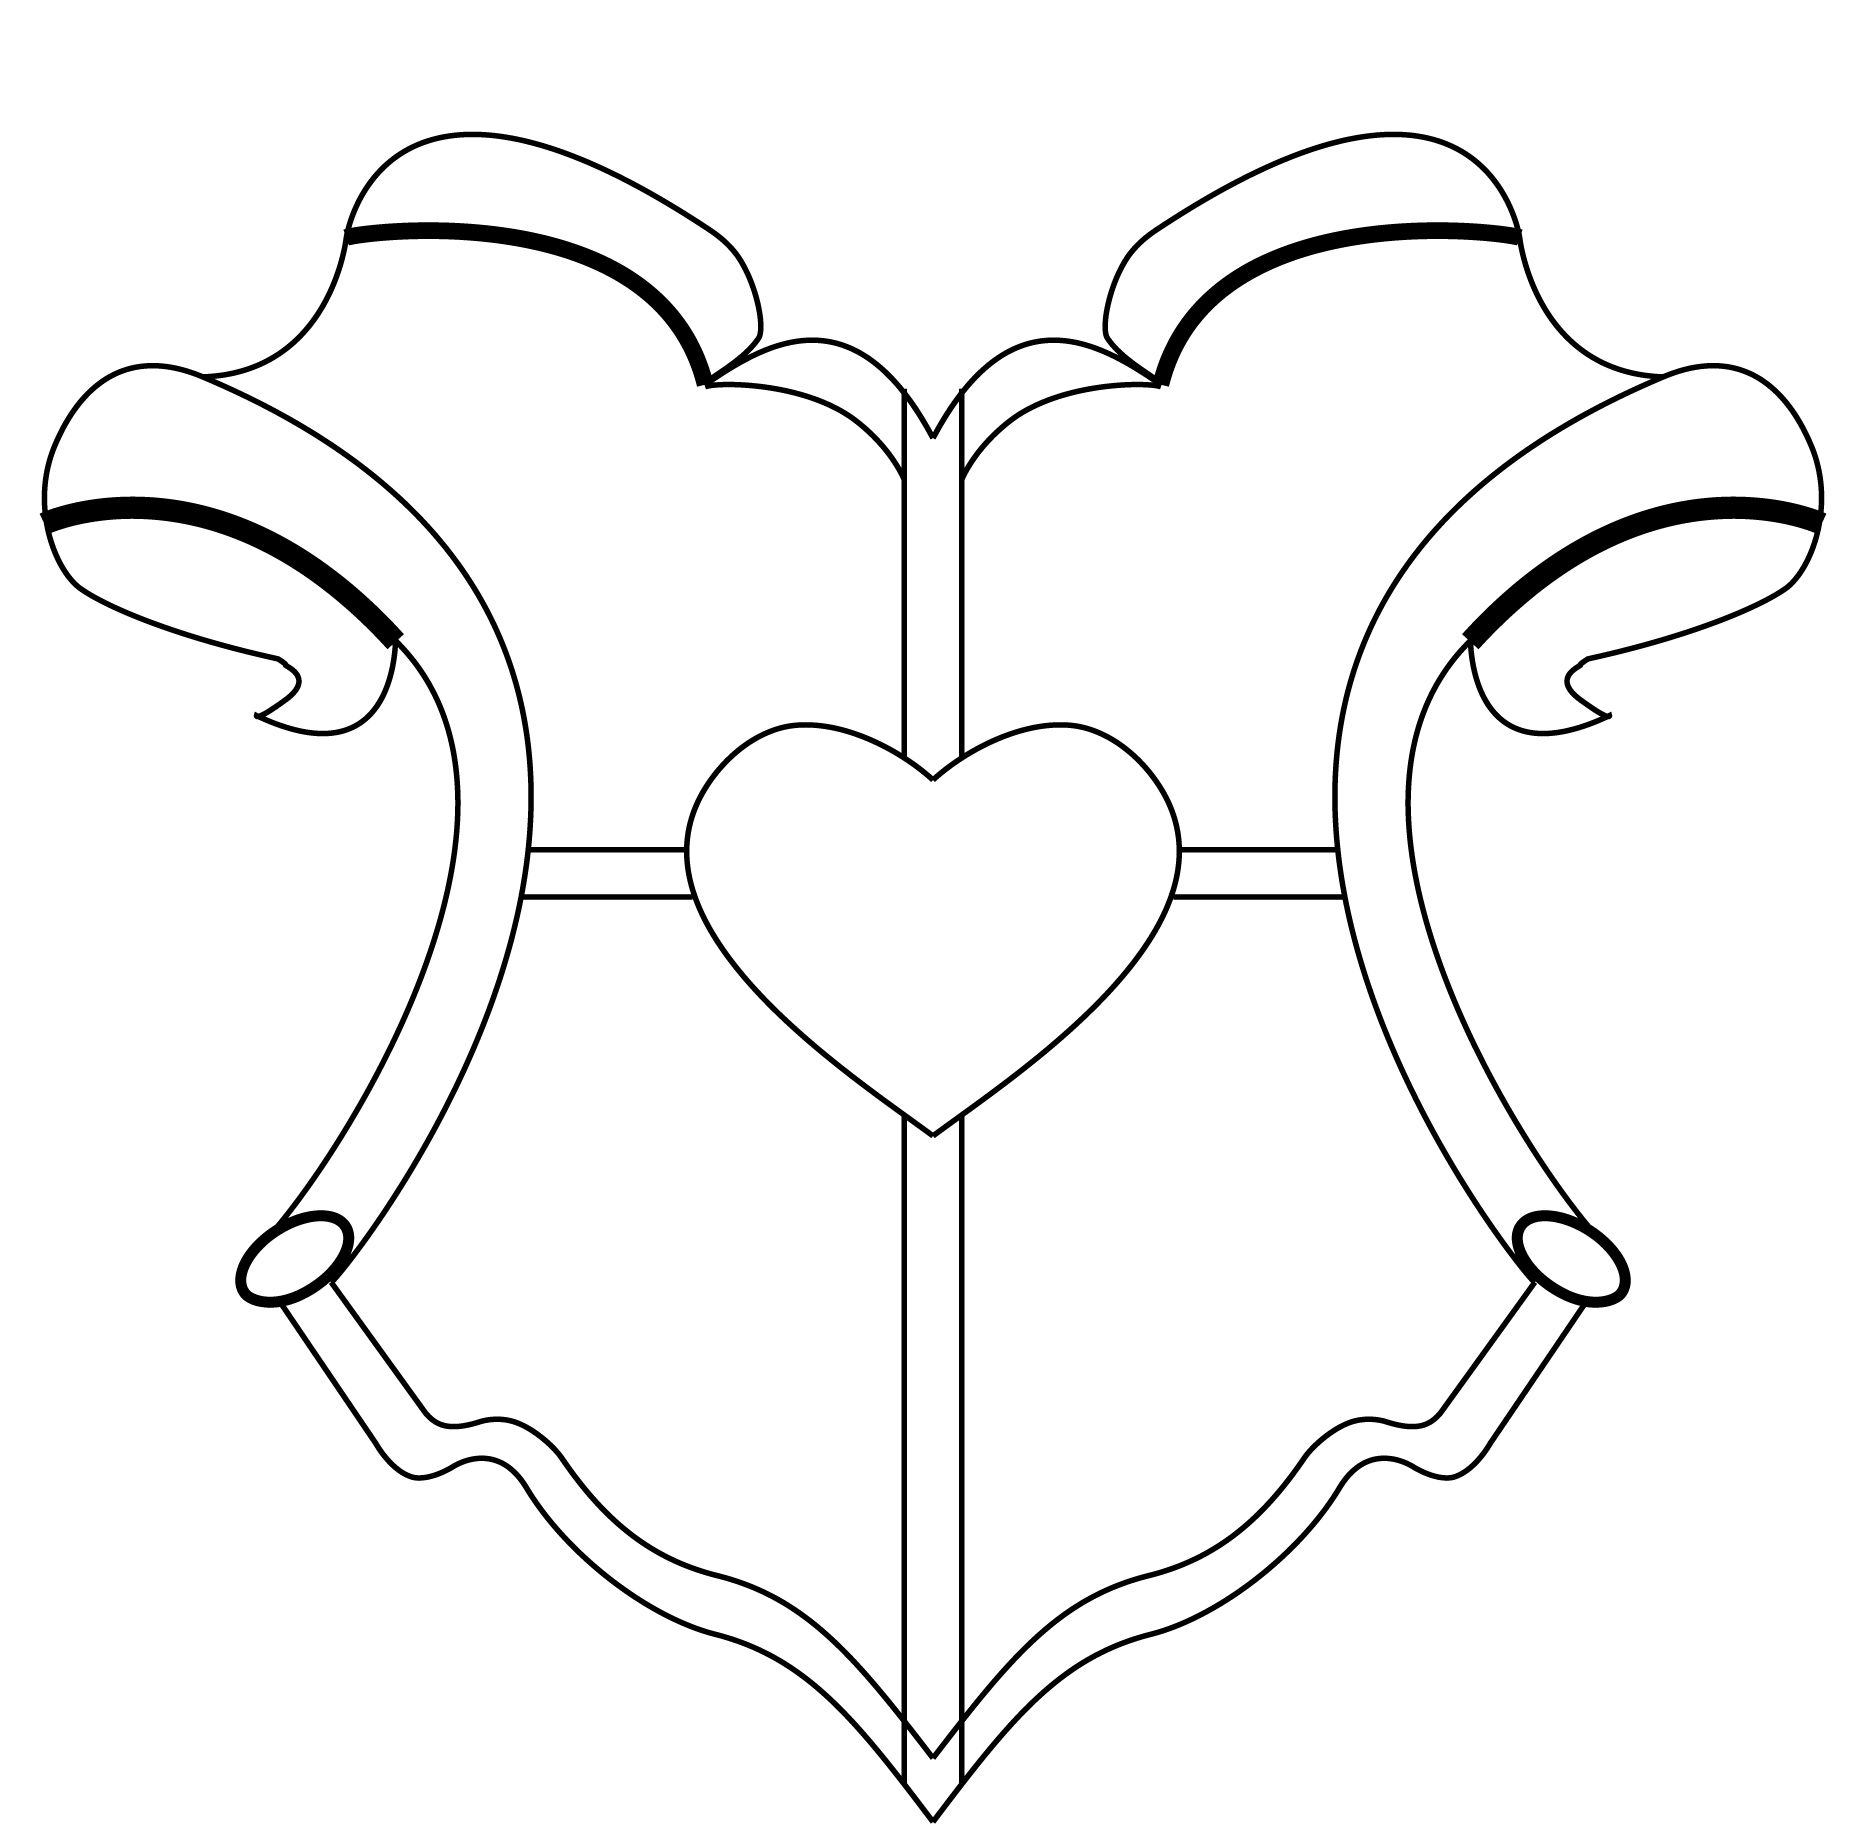 Shield Crest Template Projects To Try Clipart Library Clip Art Library Family Crest Template Coat Of Arms Family Crest